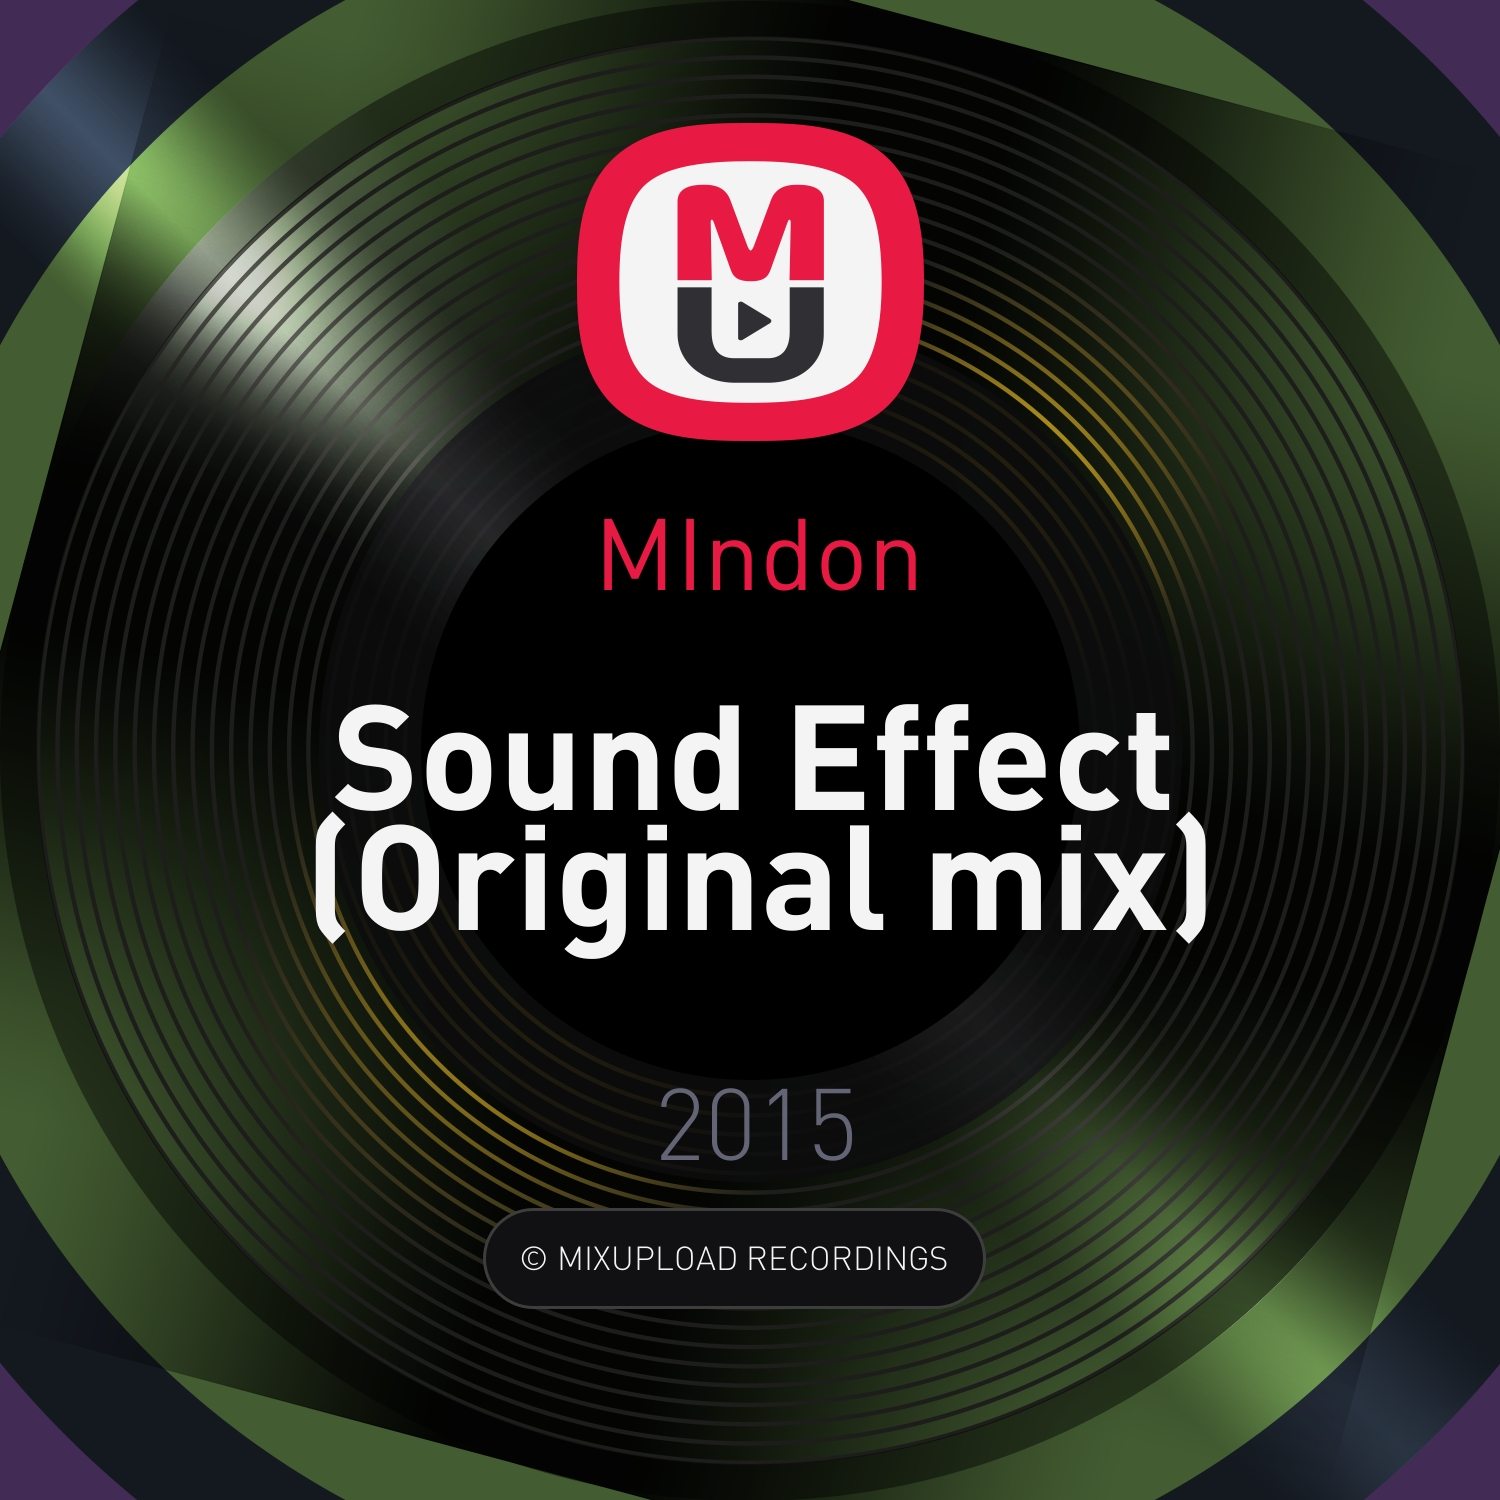 MIndon - Sound Effect (Original mix)